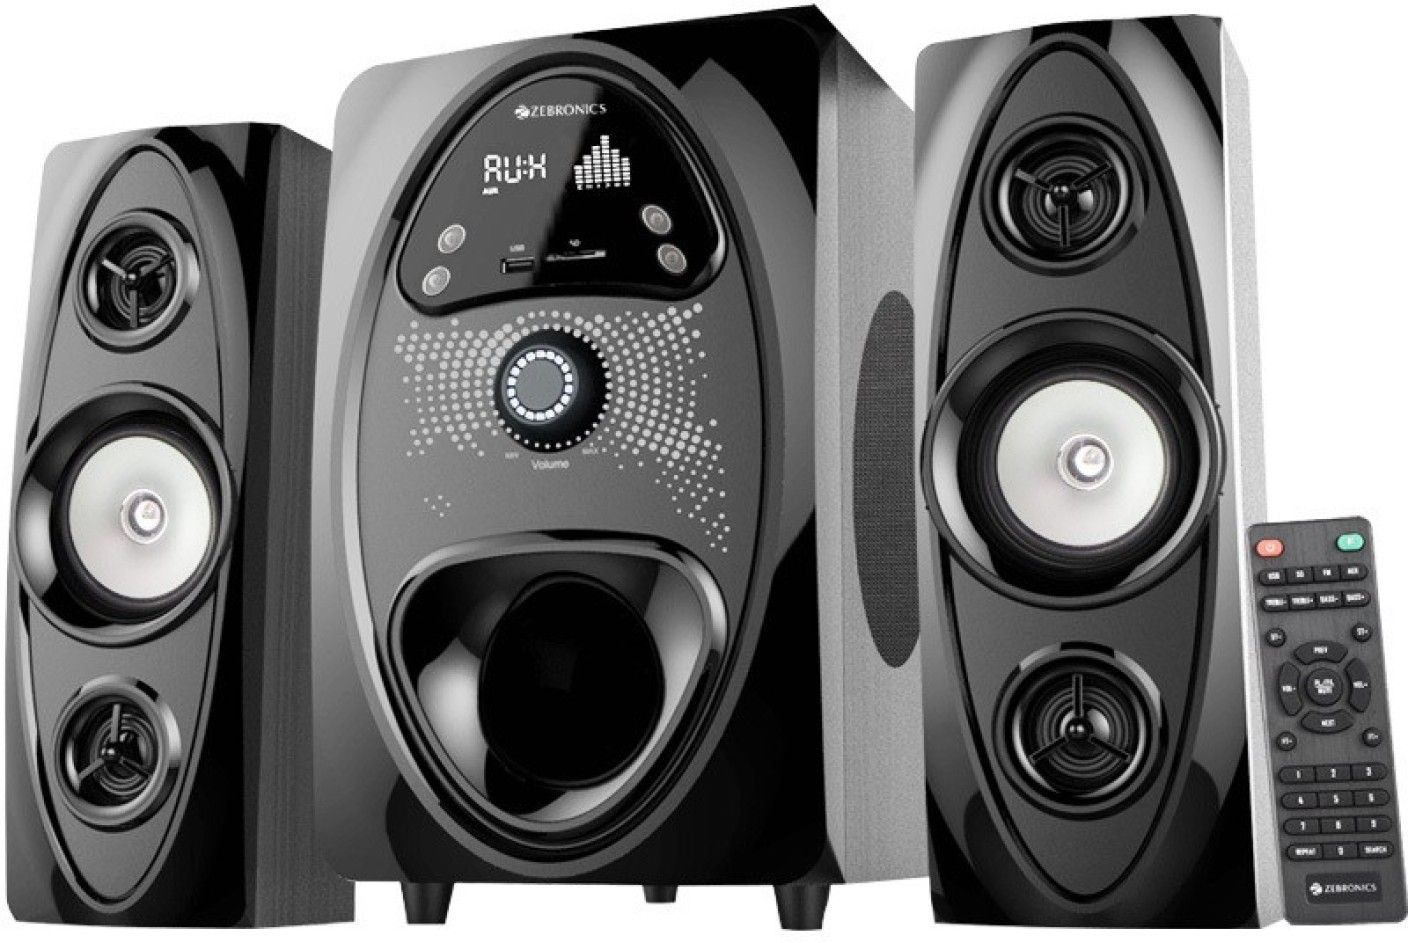 Ultimate speaker multimedia speakers koto bt  http www also best cool stuff images on pinterest good ideas awesome gadgets rh